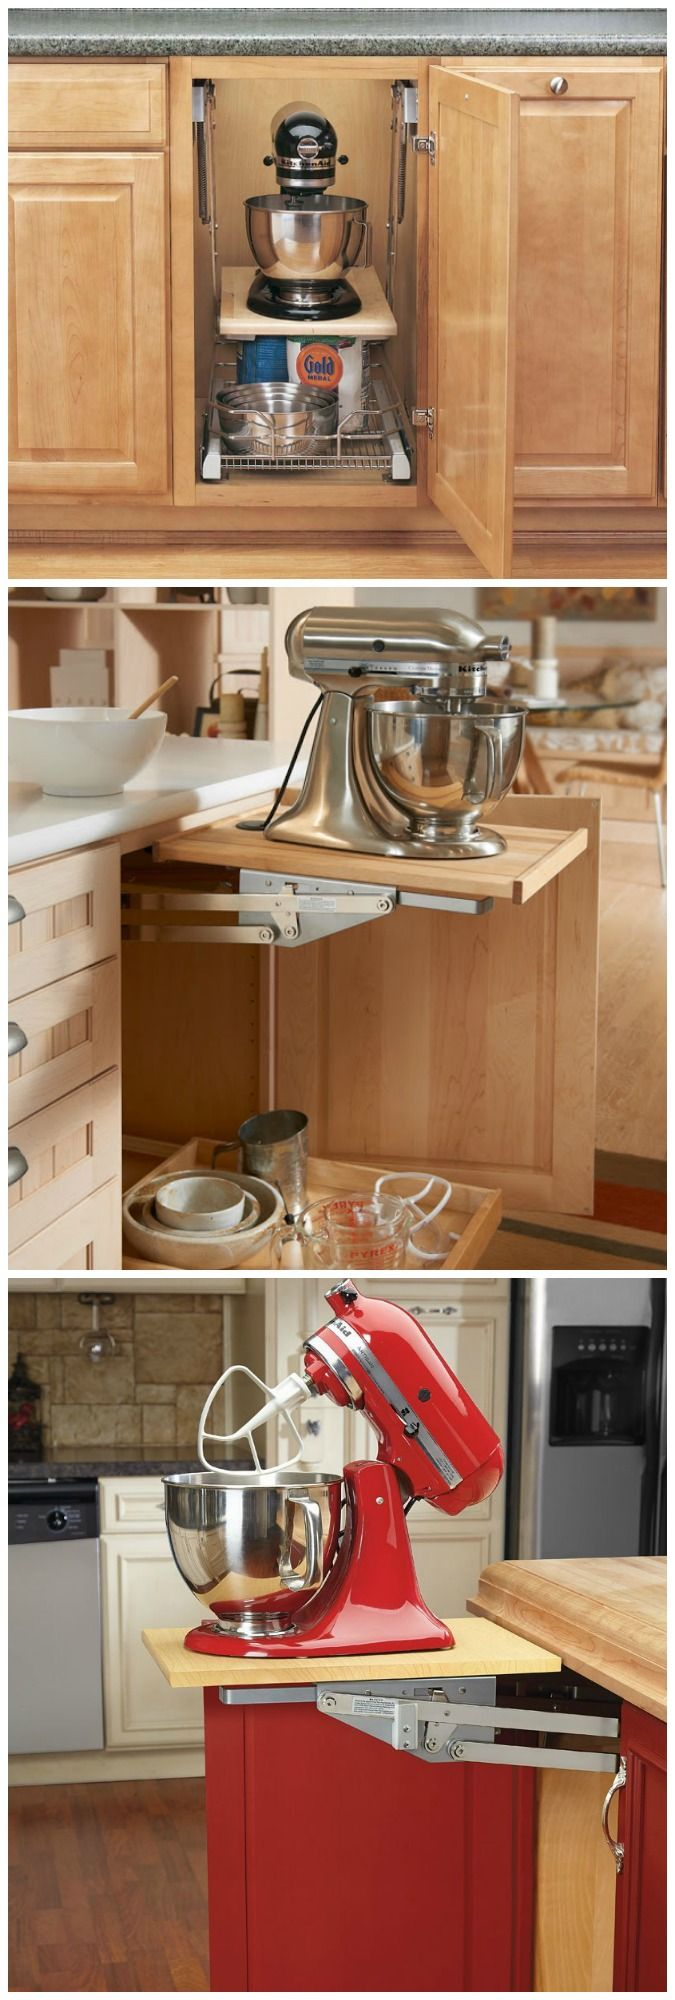 Uncategorized Kitchen Appliance Cabinet Storage best 25 appliance cabinet ideas on pinterest rev a shelf lift unique storage solution for your heavy duty appliances